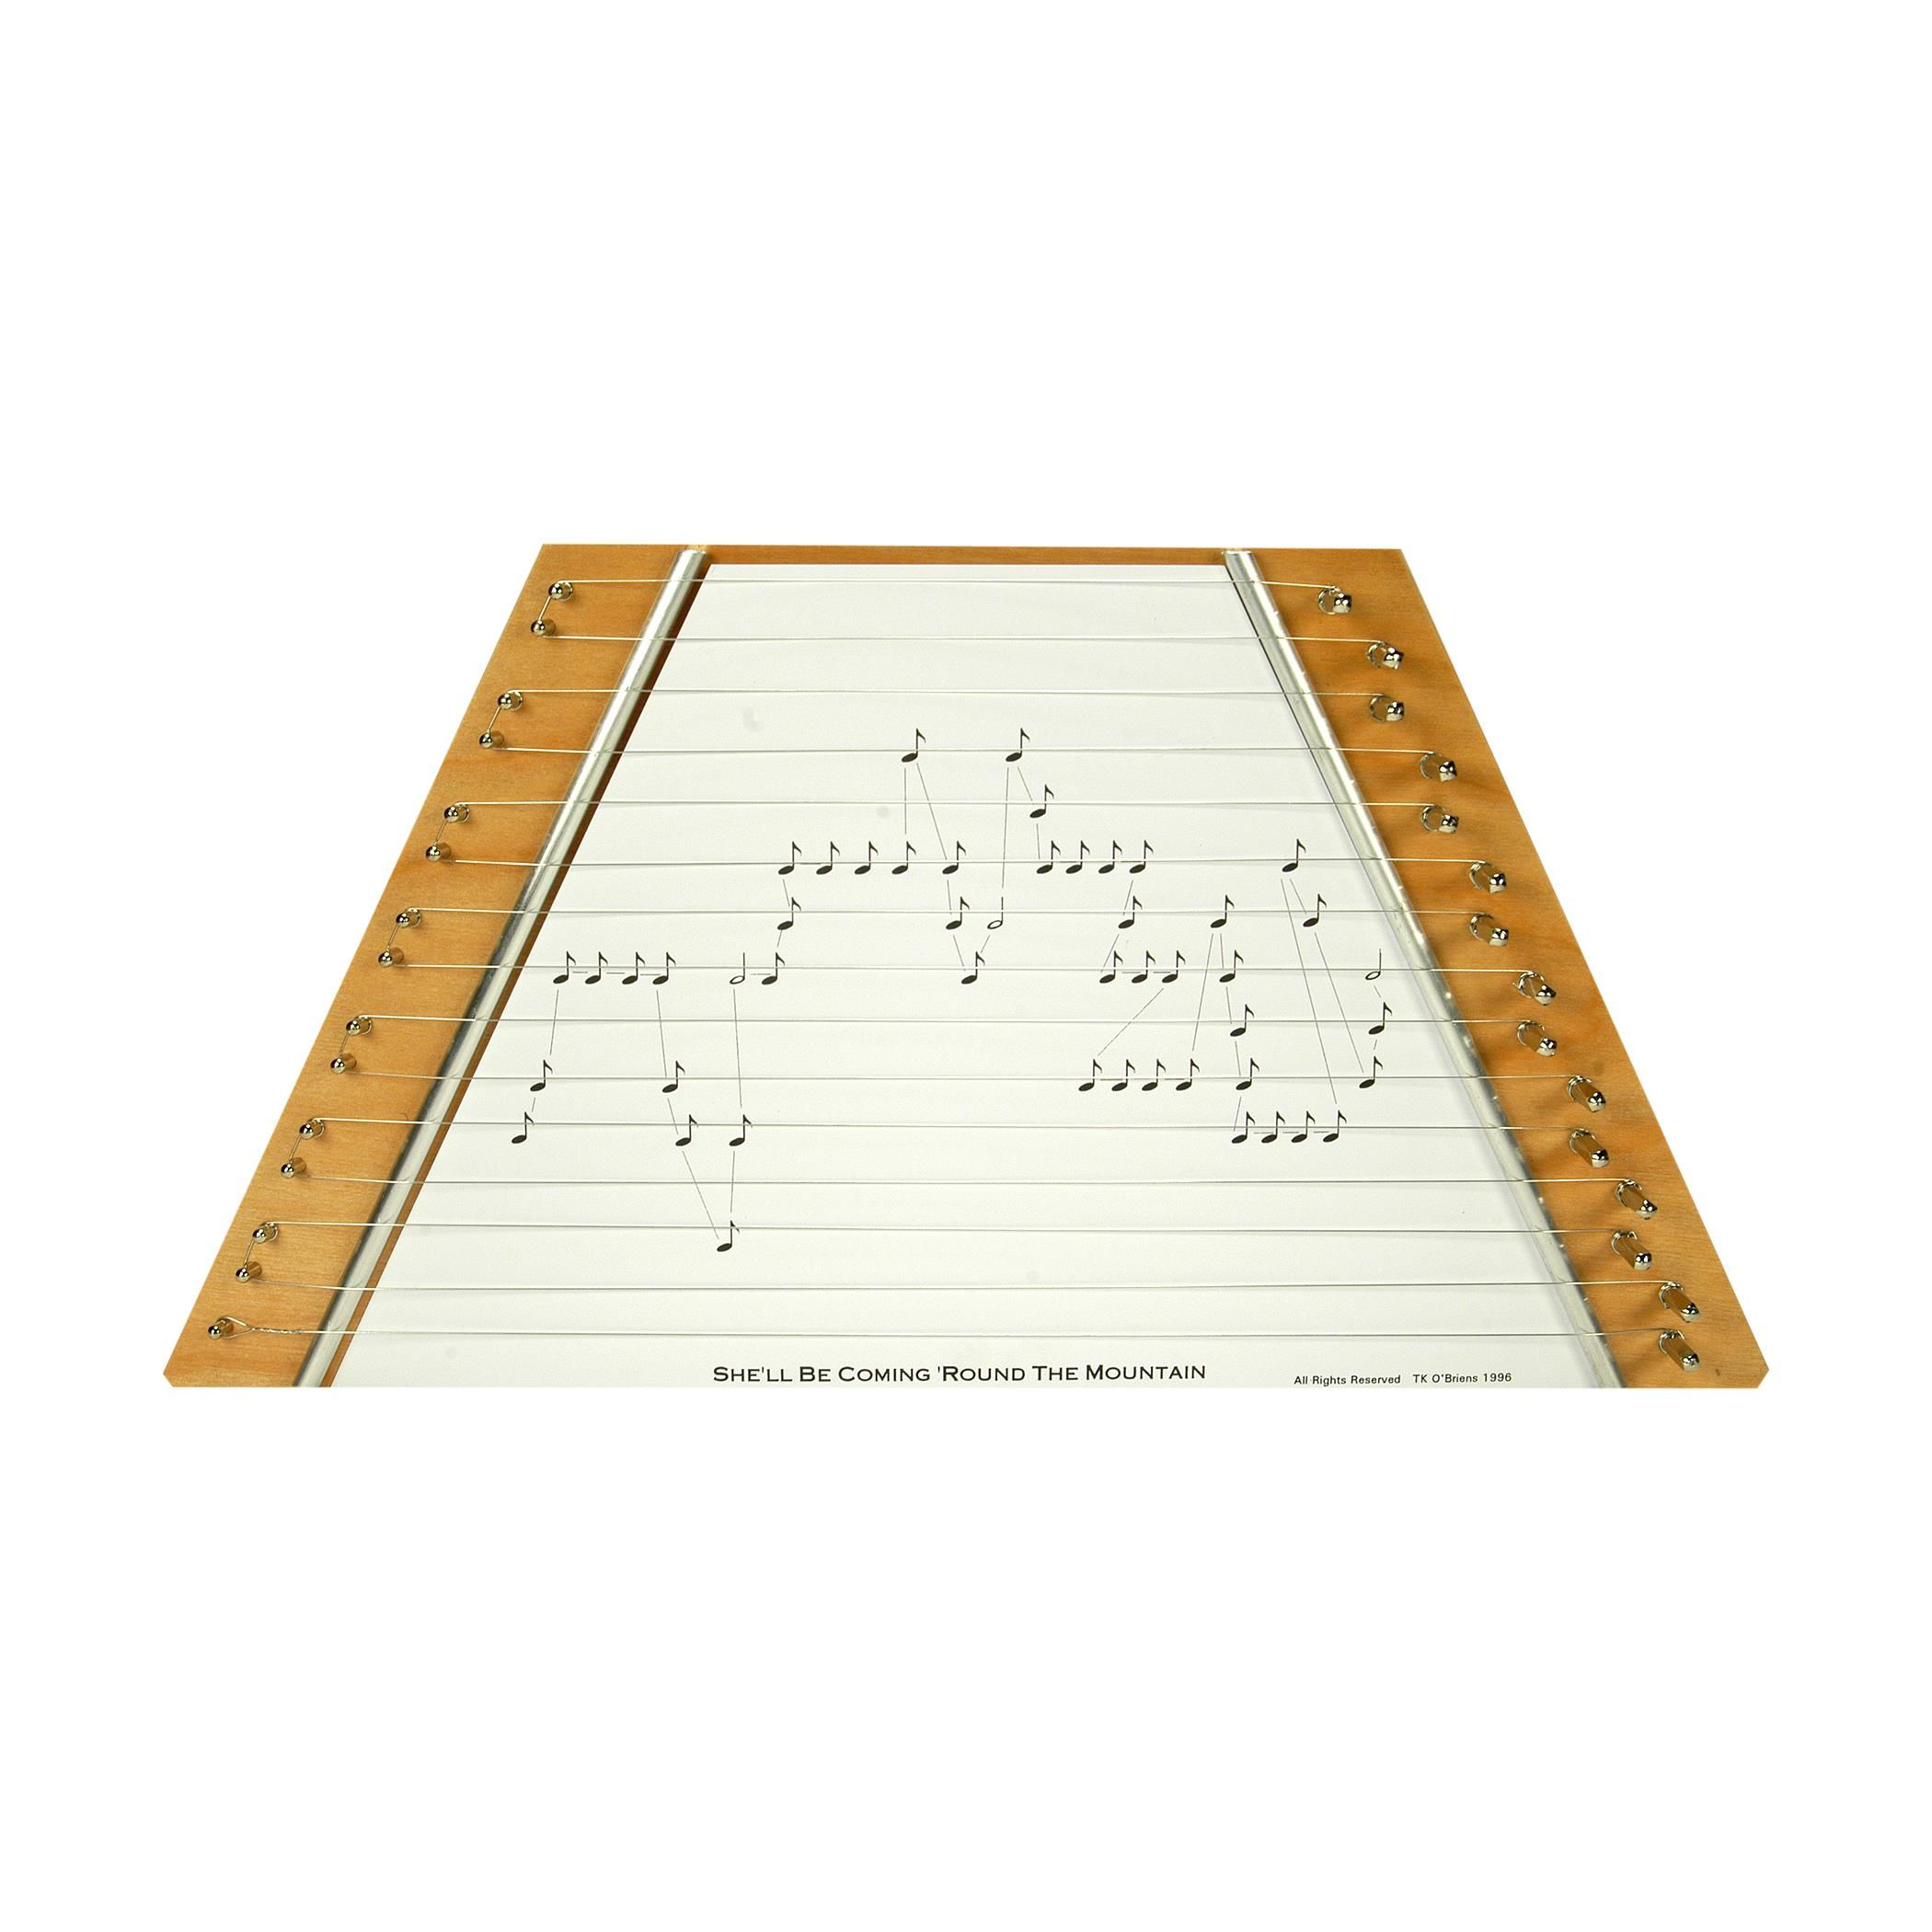 photo relating to Free Printable Lap Harp Sheet Music named Straightforward Lap Harp - Birch Wooden in just S be coming spherical the